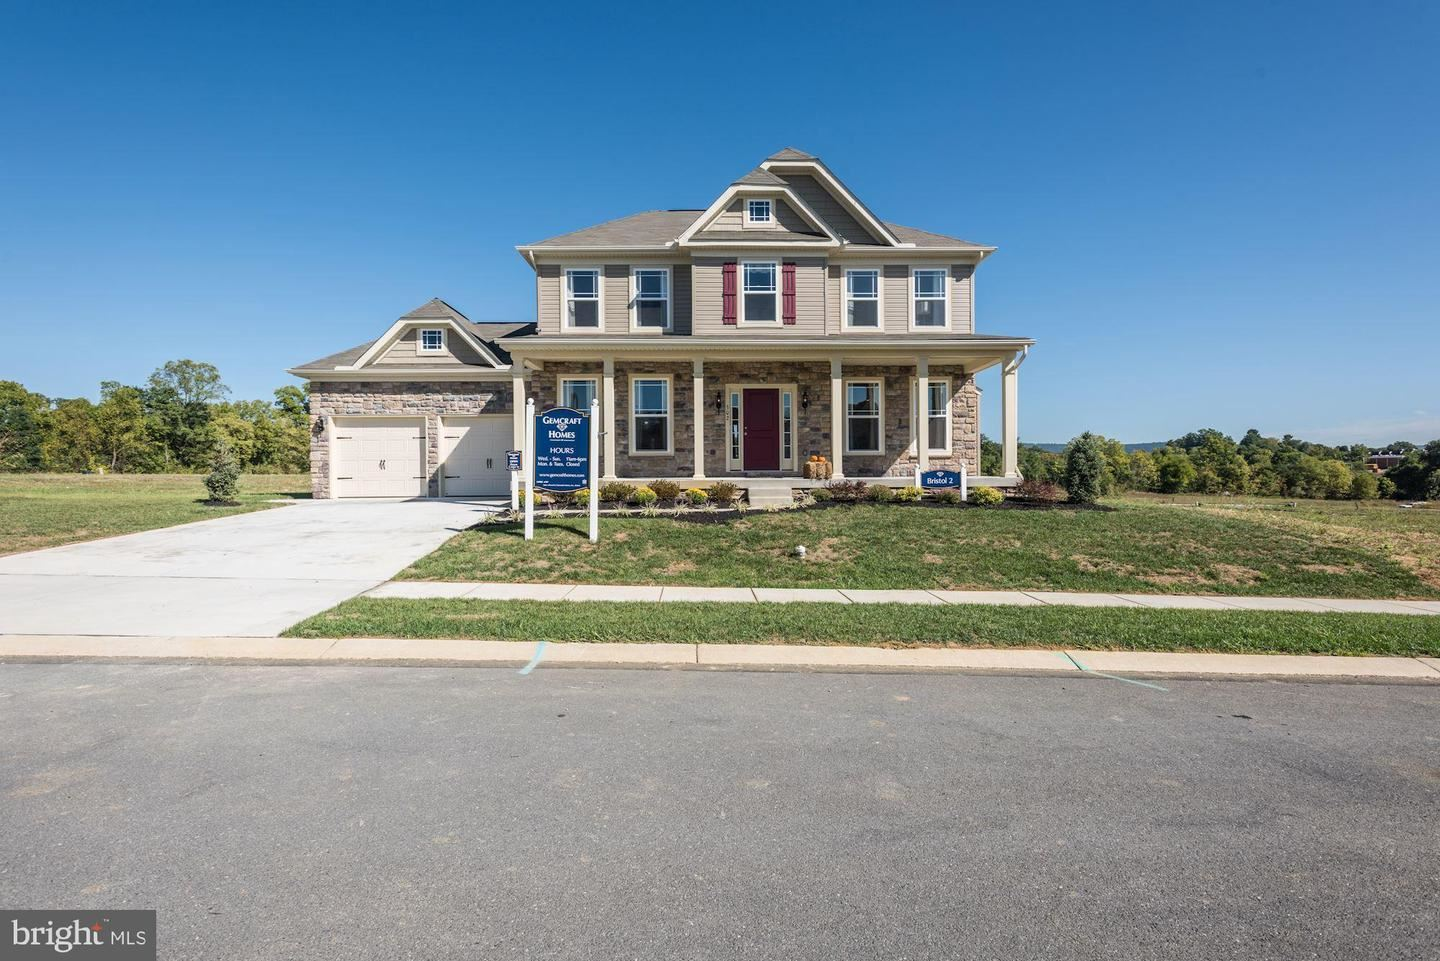 1434 QUARRY RD, Whiteford, MD 21160 - MLS#: MDHR259100